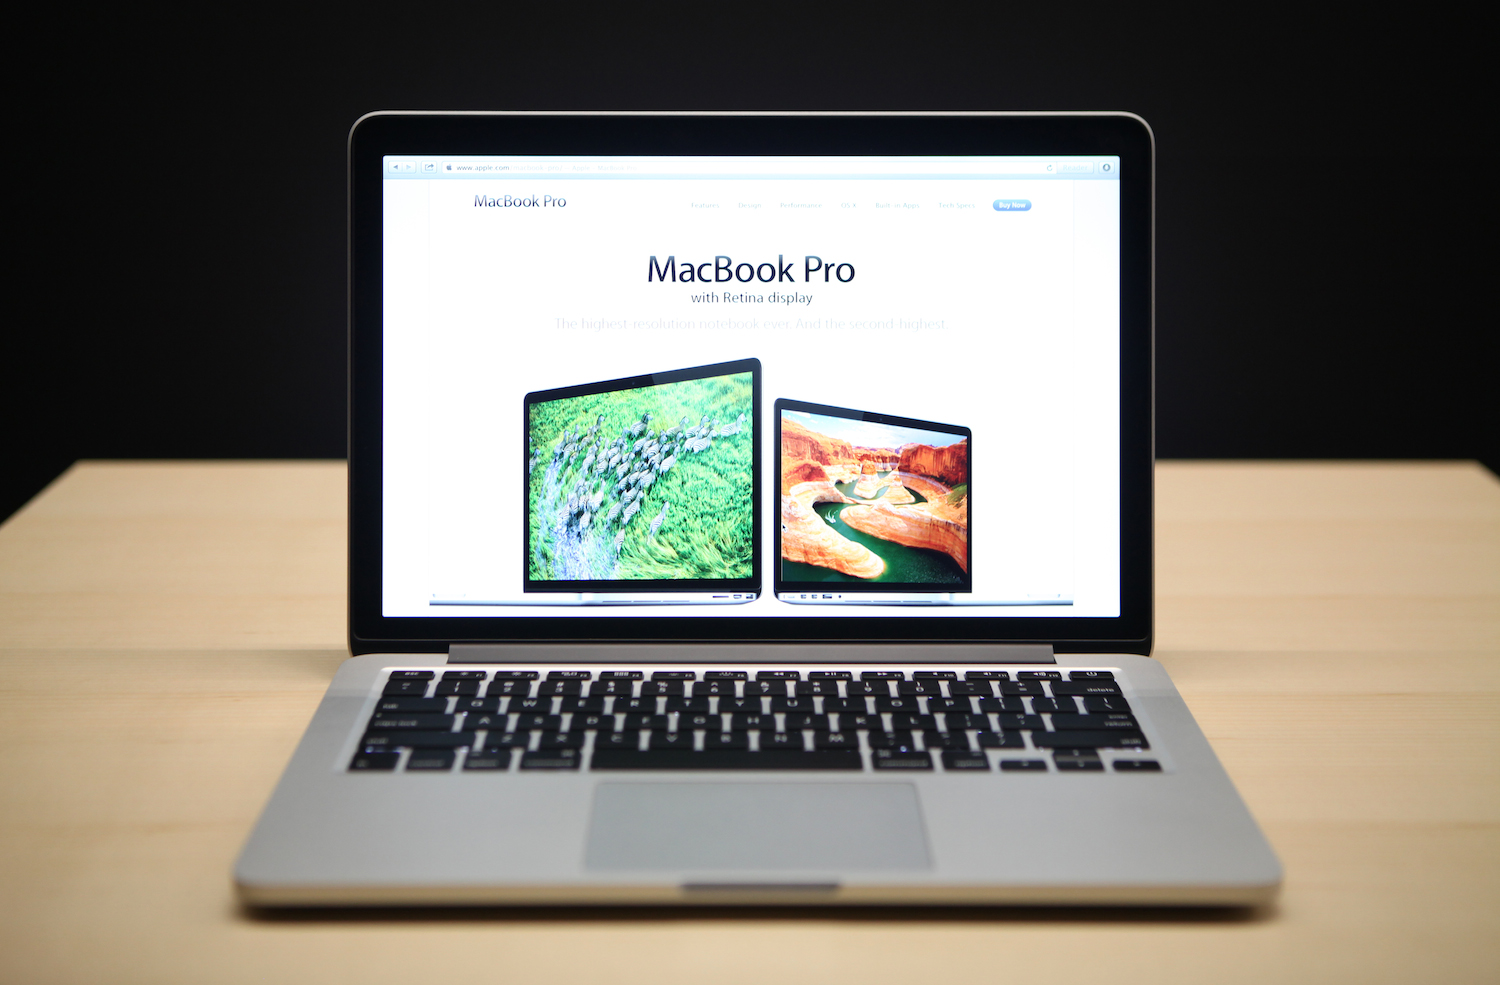 The new 13 inch Macbook Pro with a Retina display is seen during Apple's special event at the California Theatre in San Jose on October 23, 2012 in California.   AFP PHOTO/ Kimihiro Hoshino        (Photo credit should read KIMIHIRO HOSHINO/AFP/Getty Images)